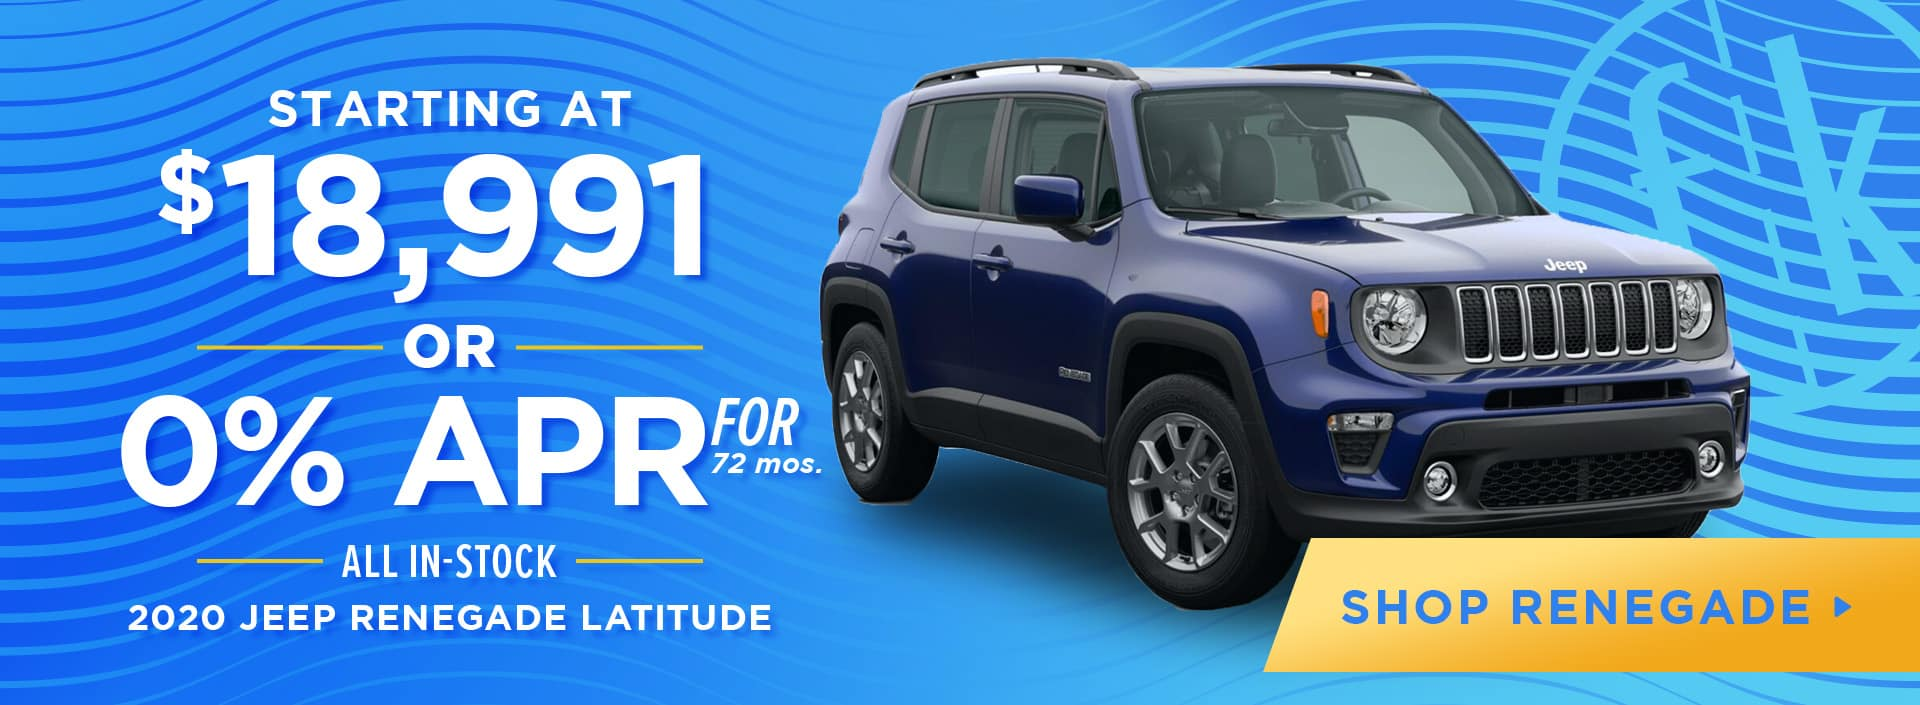 Starting at $18,991 -OR- 0% for 72 All In-Stock 2020 Jeep Renegade Latitude